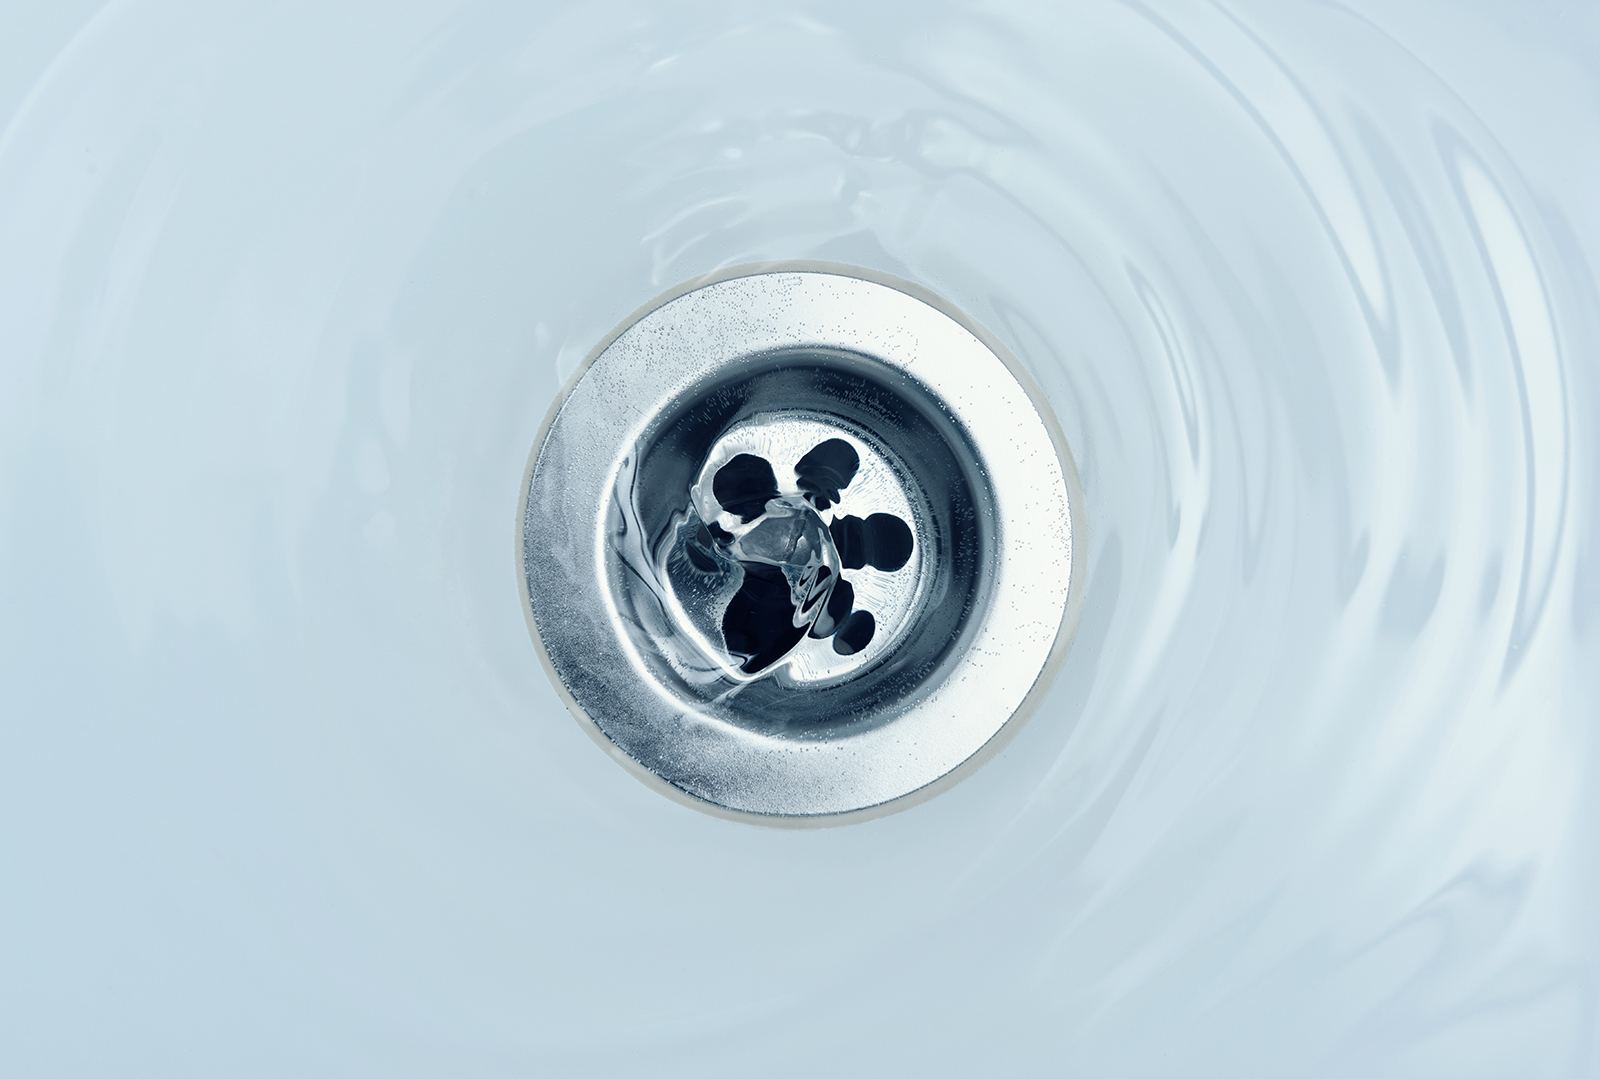 how to clean bathroom sink drain